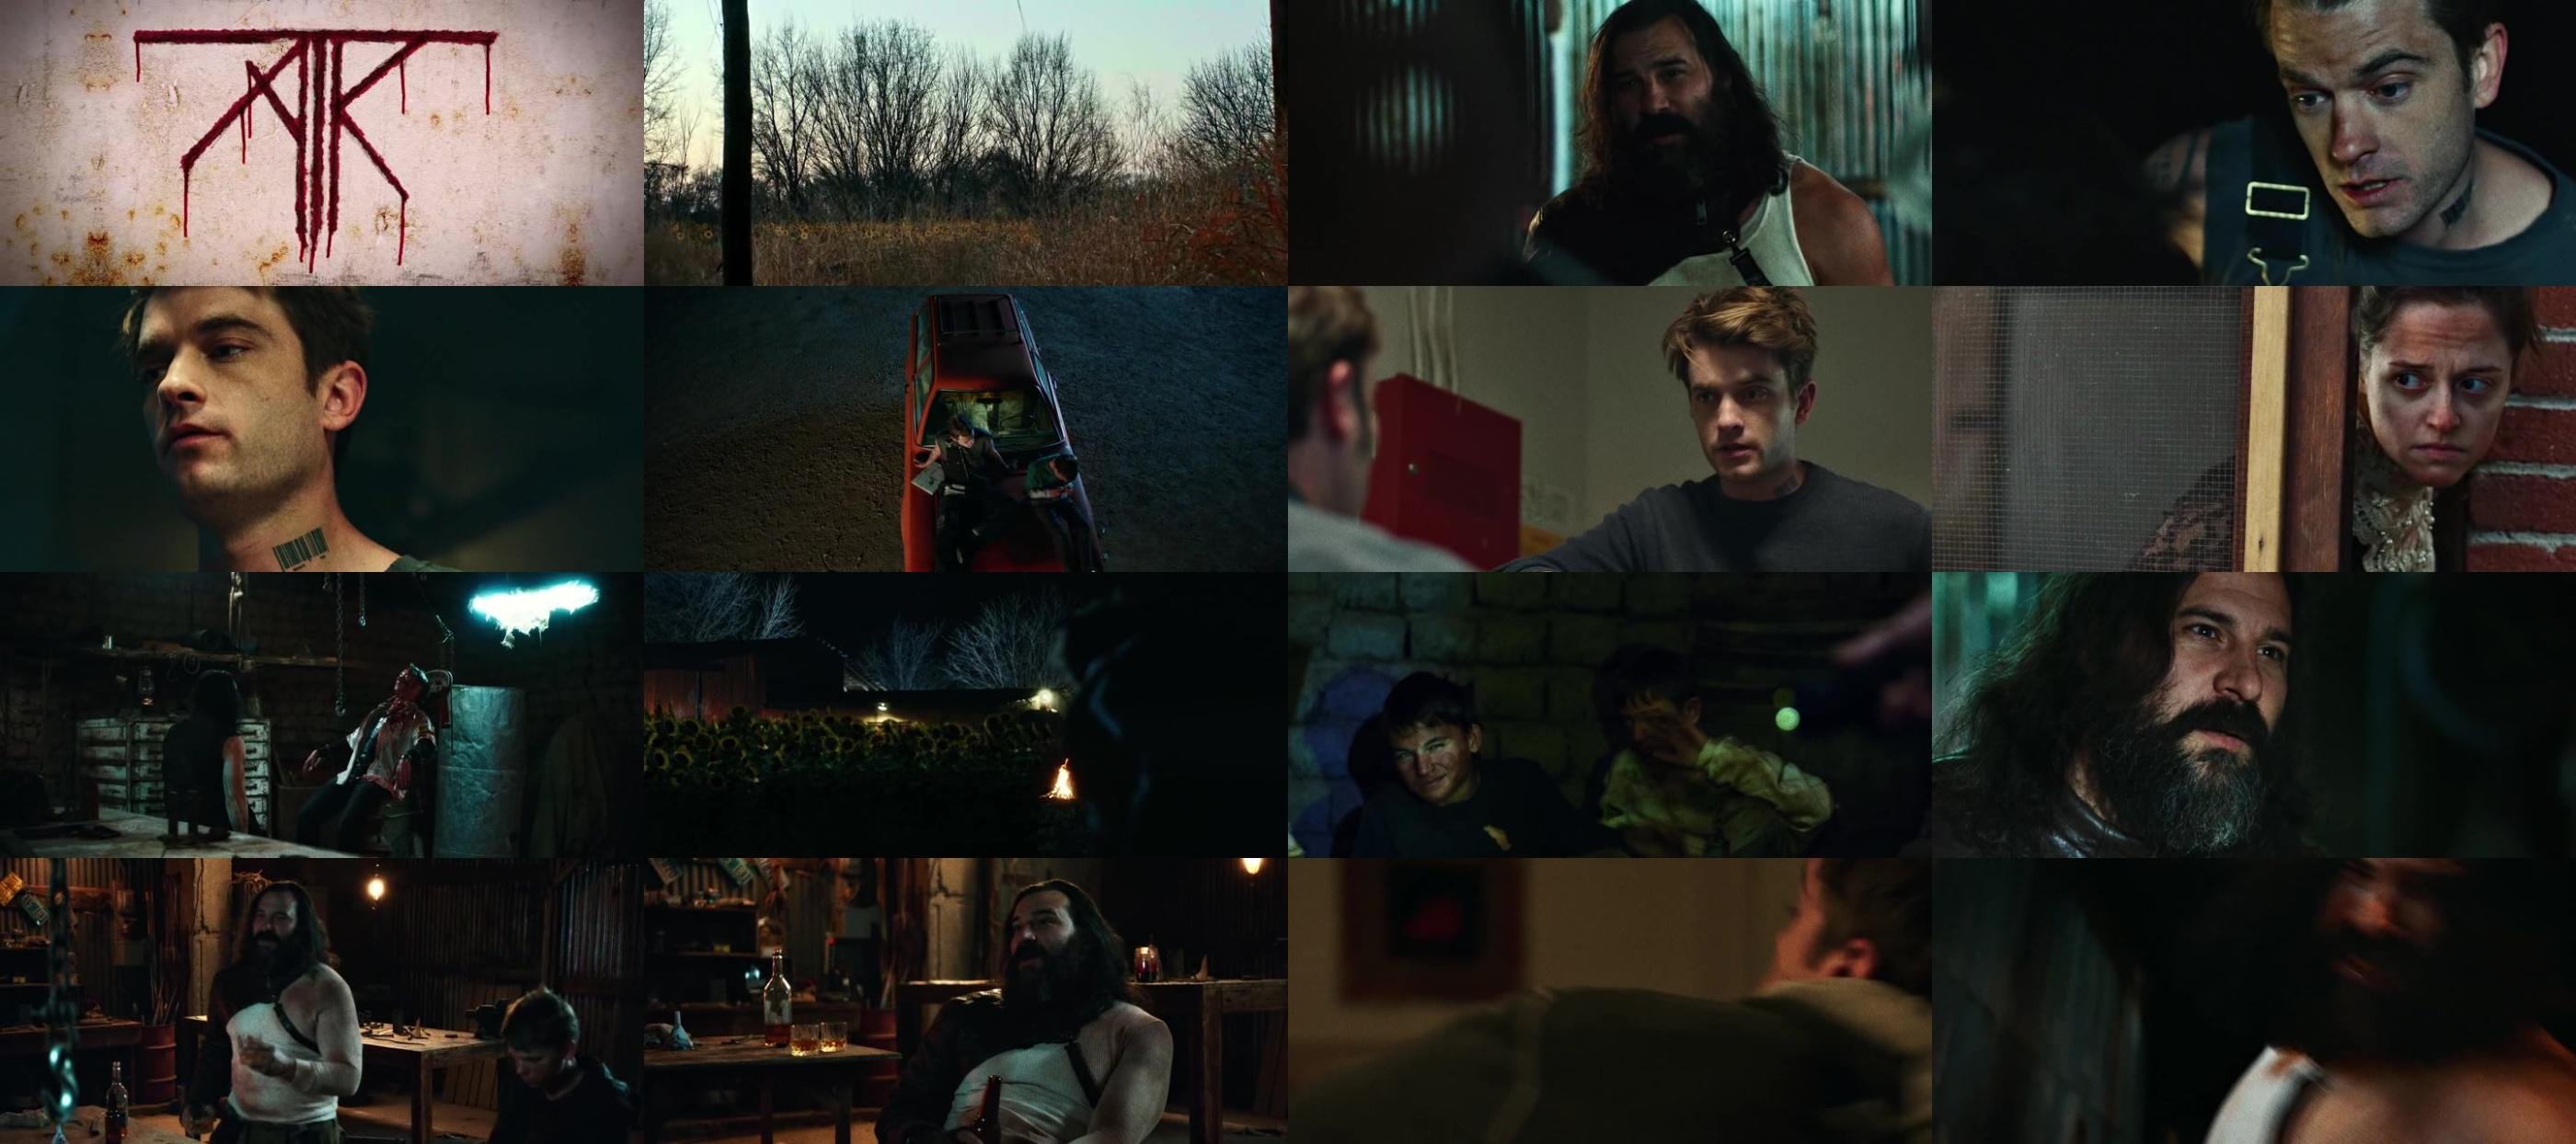 Artik 2019 WEB DL XviD MP3 FGT